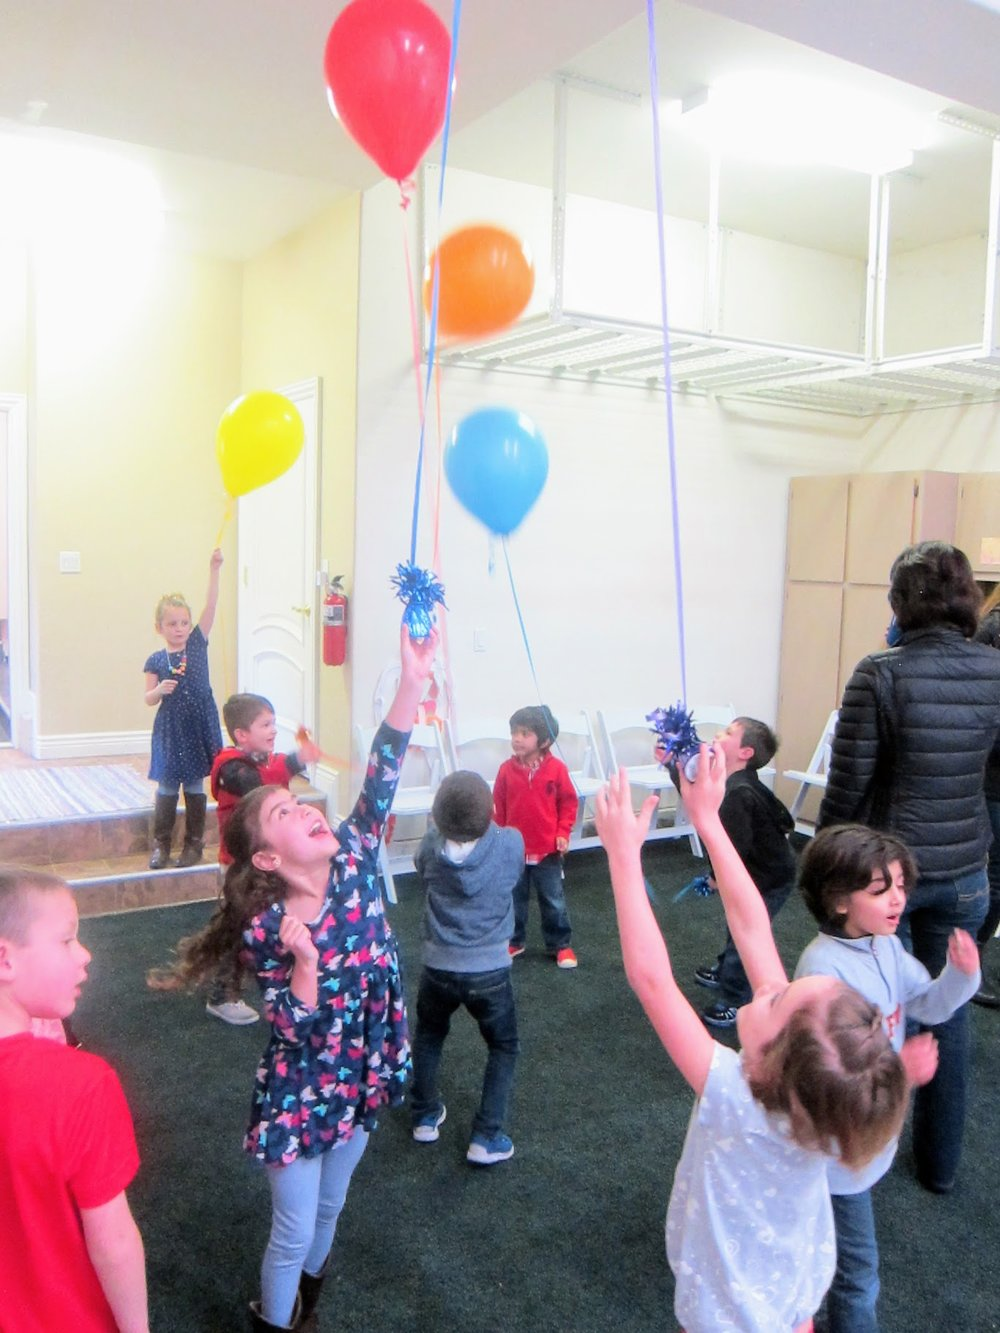 ballons kids party fun